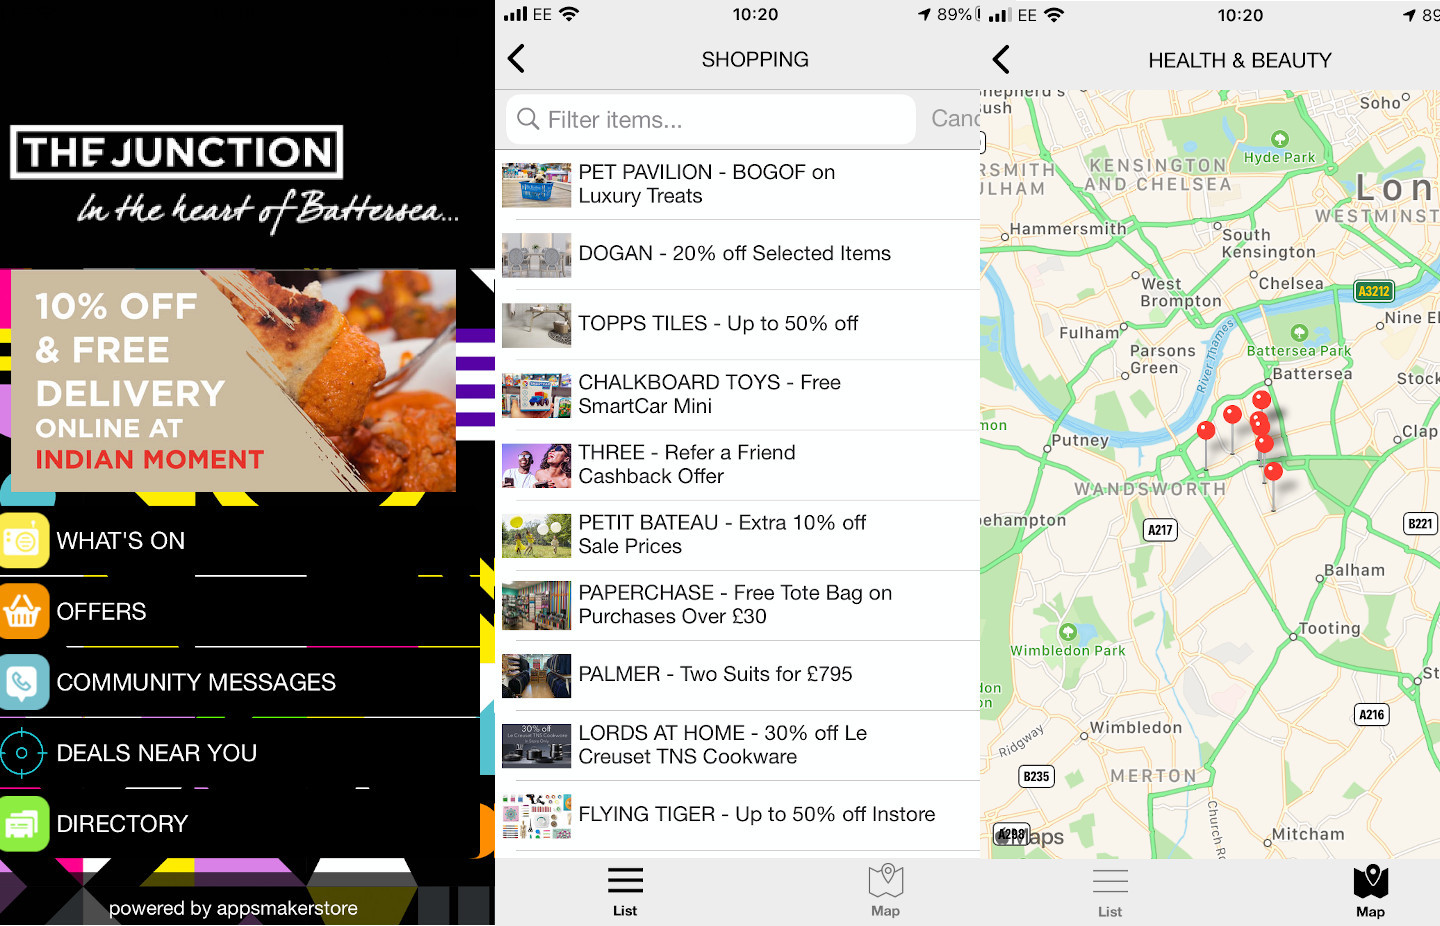 The Junction App